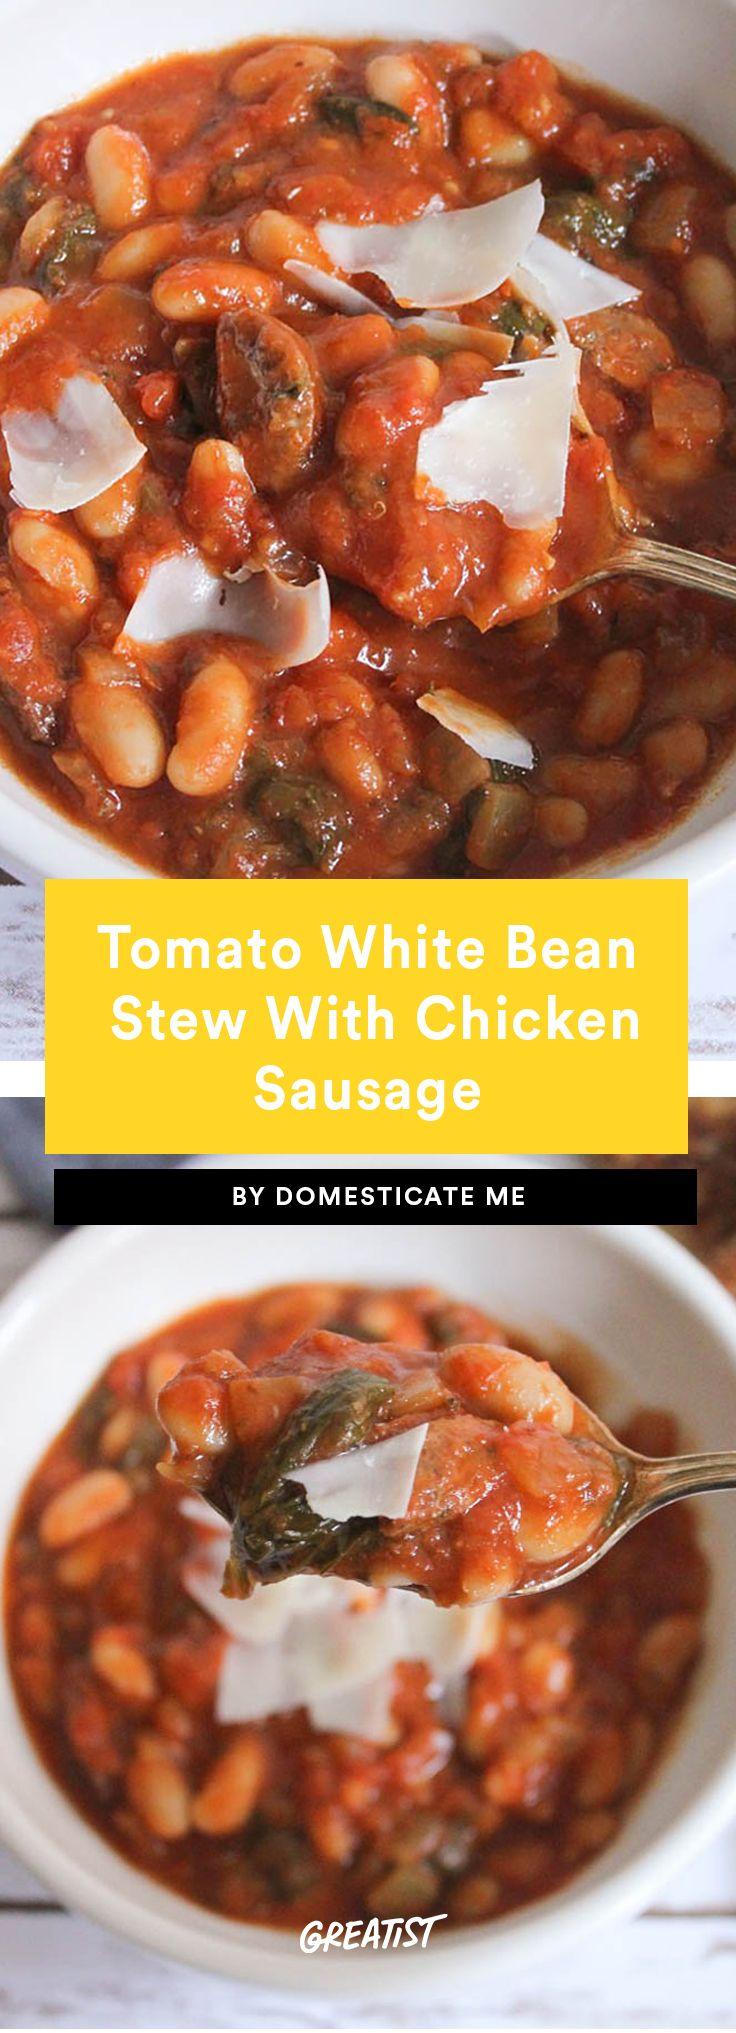 9 chicken sausage recipes for when youre not down with